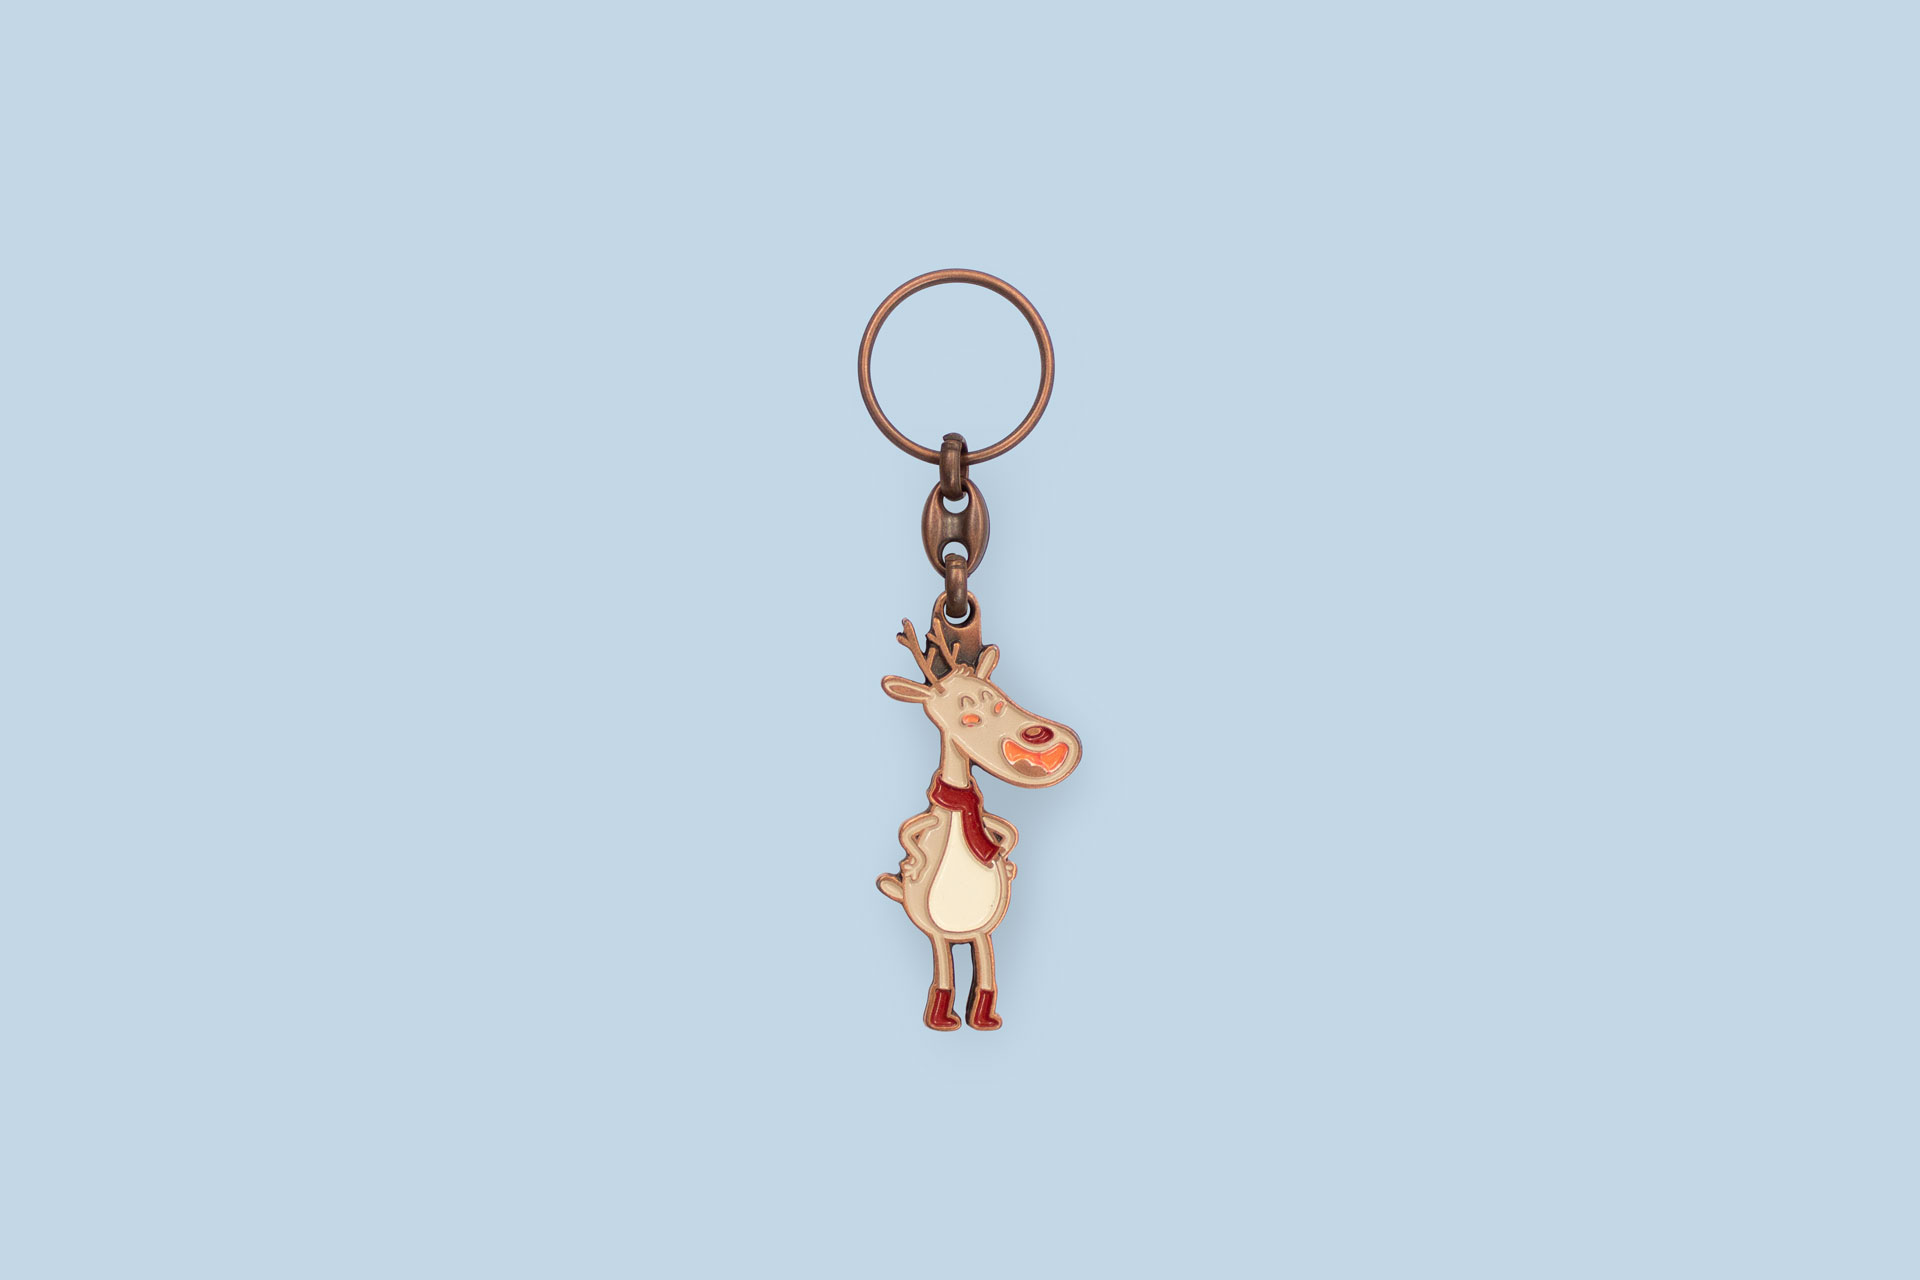 Copper-colored plated enamel Keychain